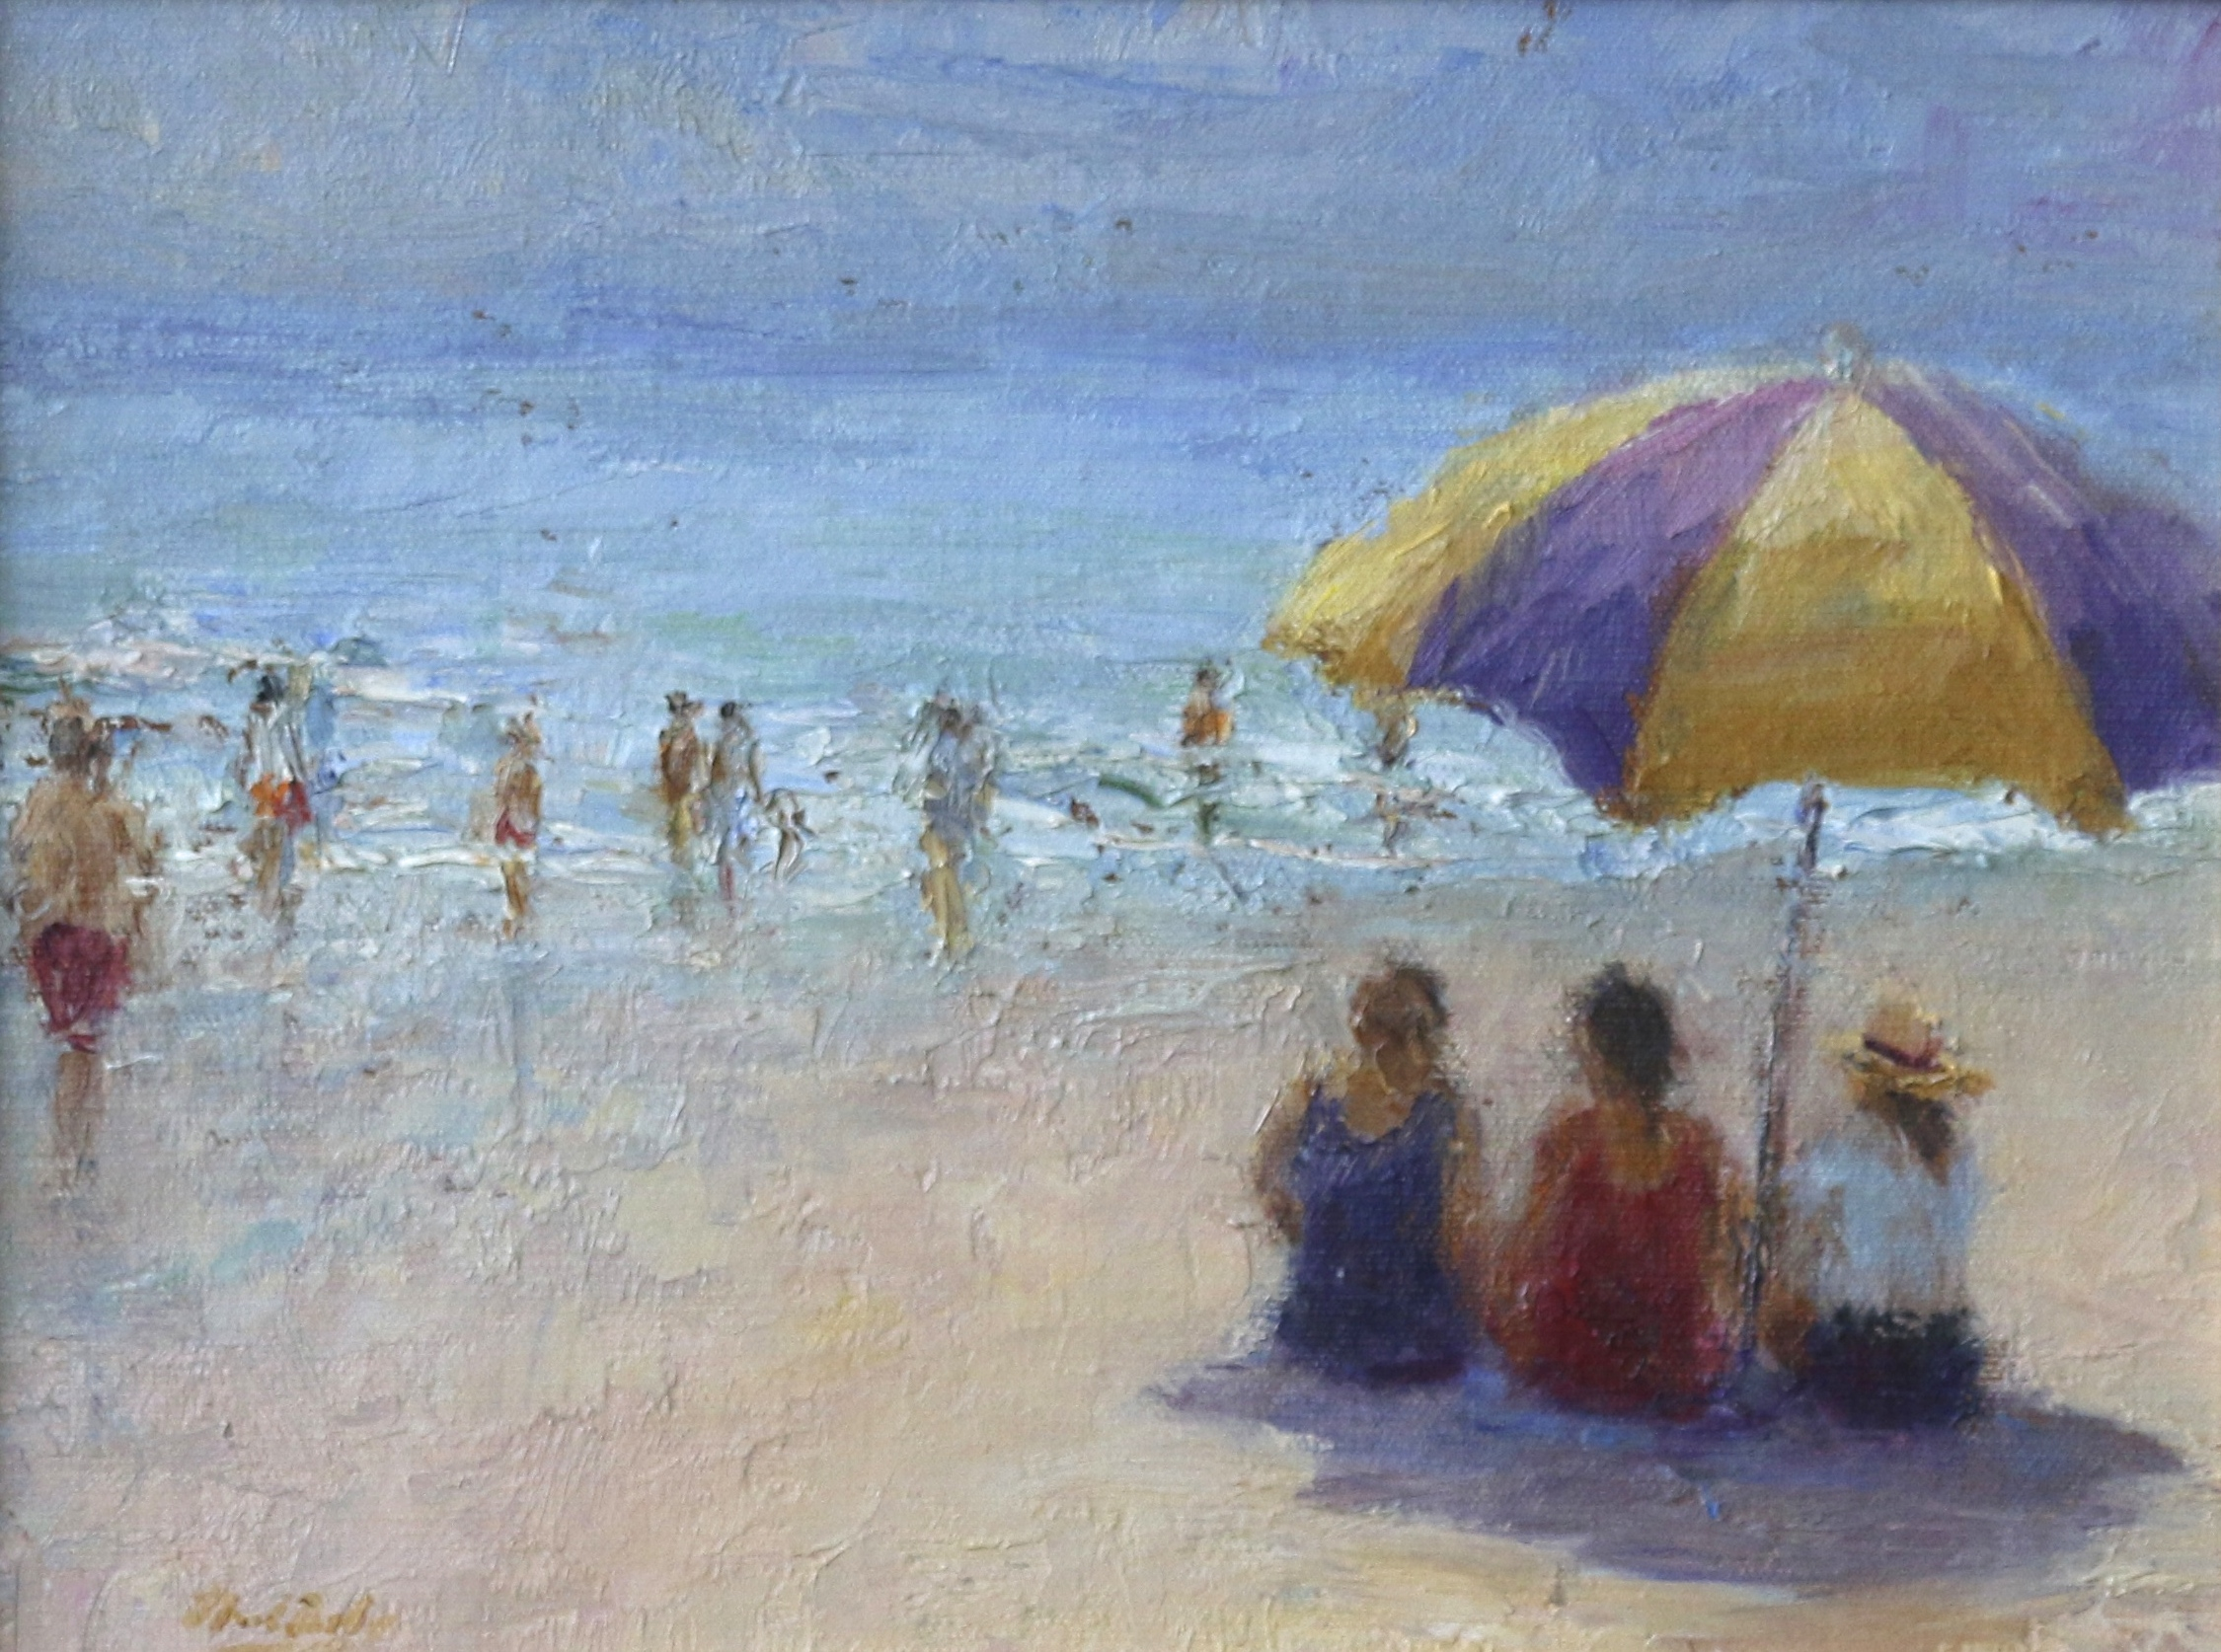 Beach Talk, Oil 9 x 12, SLL by Mark Daly. Available at Rehs Galleries